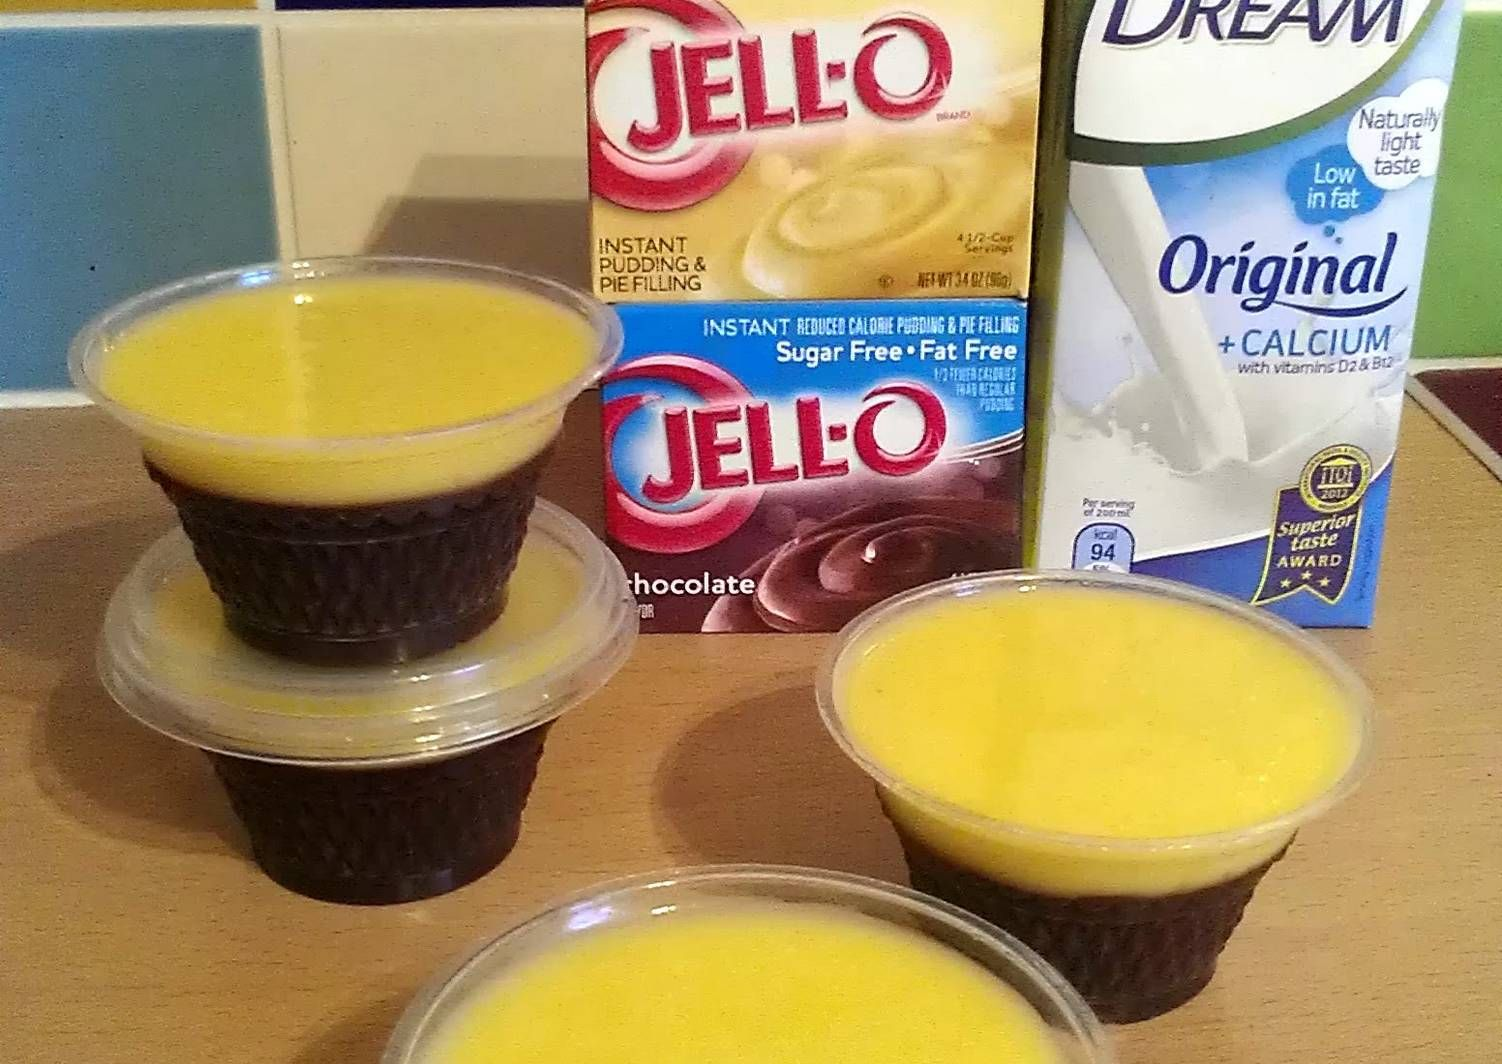 Vickys Alternative Milk Instructions For Jello Instant Pudding Gluten Dairy Egg Soy Free Vegan Recipe By Vicky Jacks Free From Cookbook Recipe Jello Instant Pudding Instant Pudding Pudding